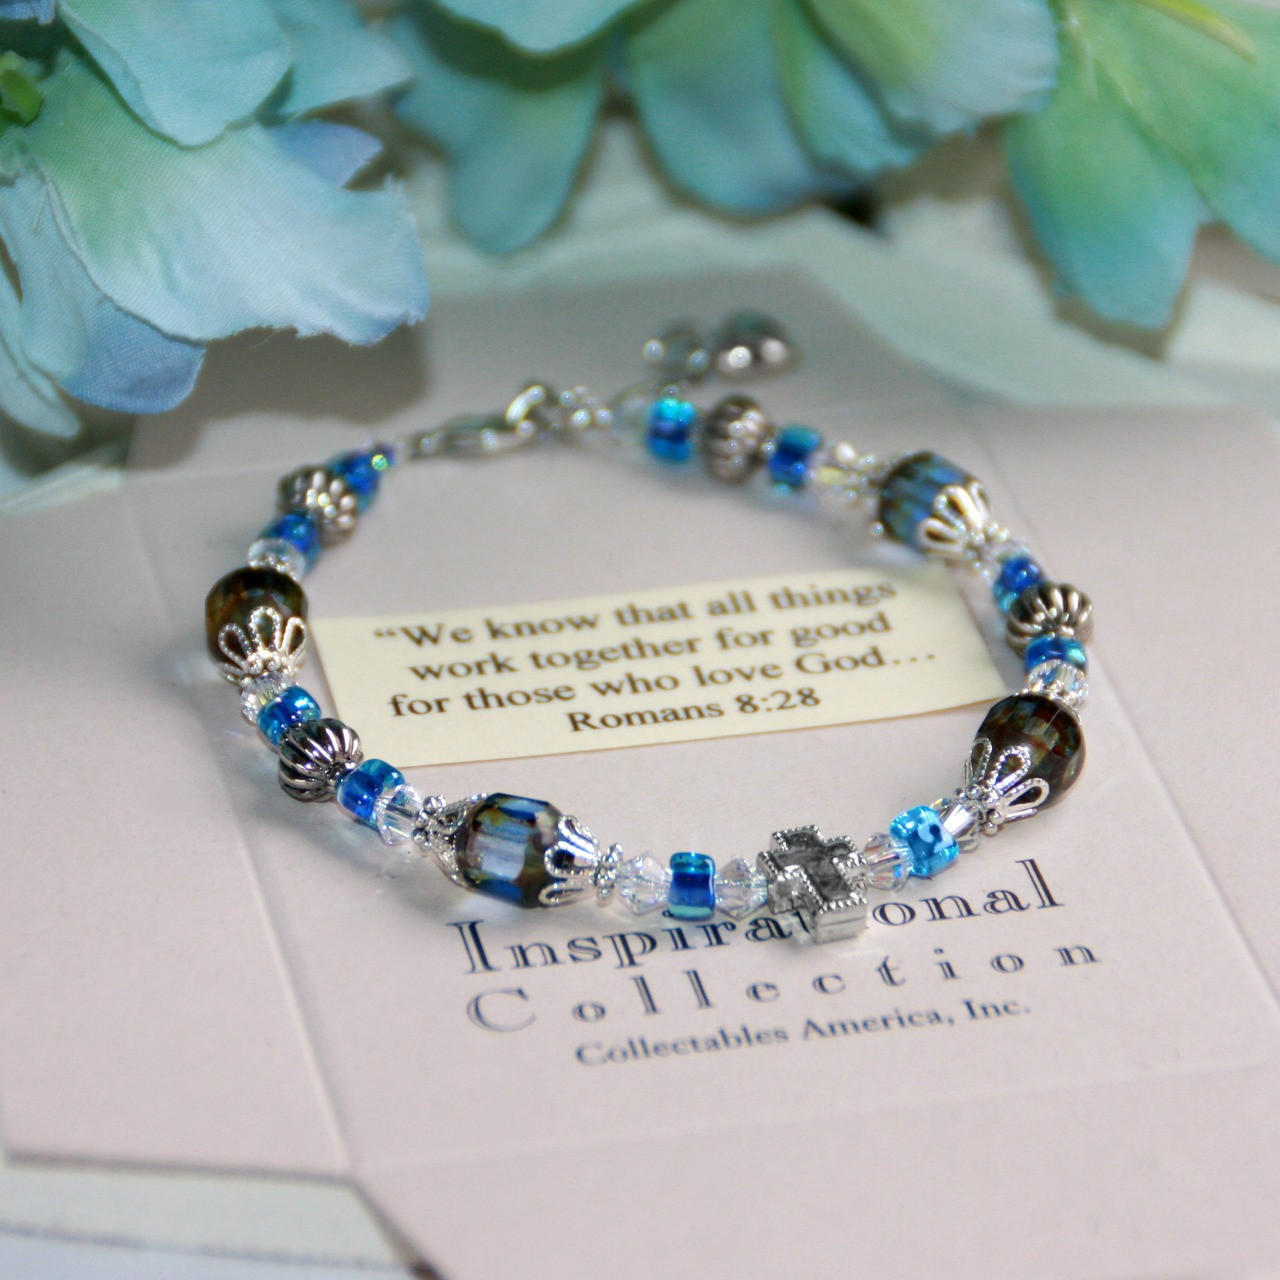 IN-130 Blue...We know that all things work together Bracelet